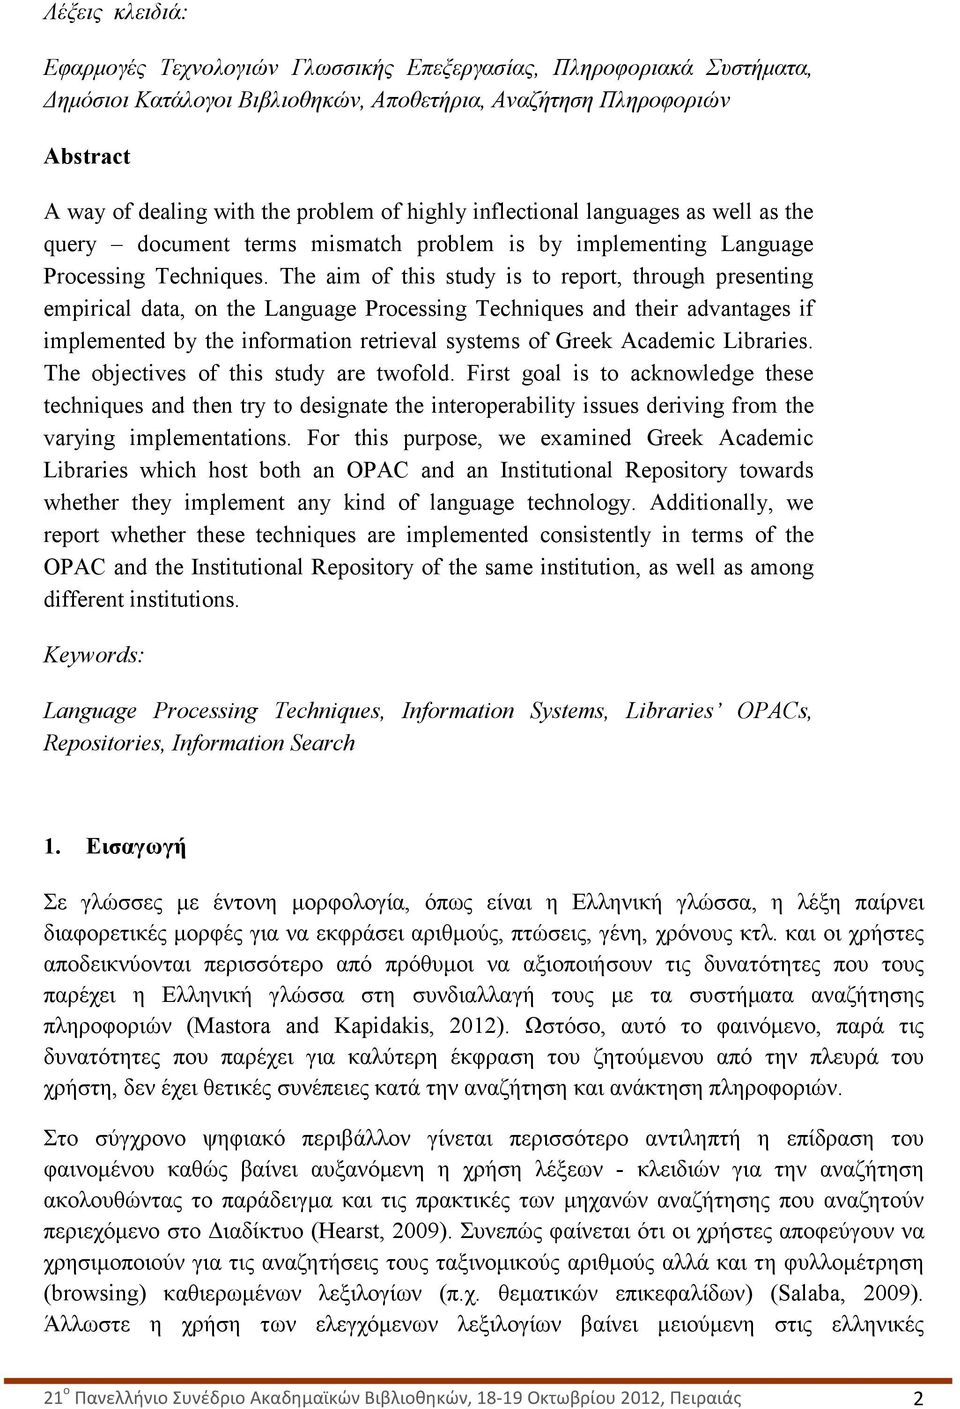 The aim of this study is to report, through presenting empirical data, on the Language Processing Techniques and their advantages if implemented by the information retrieval systems of Greek Academic